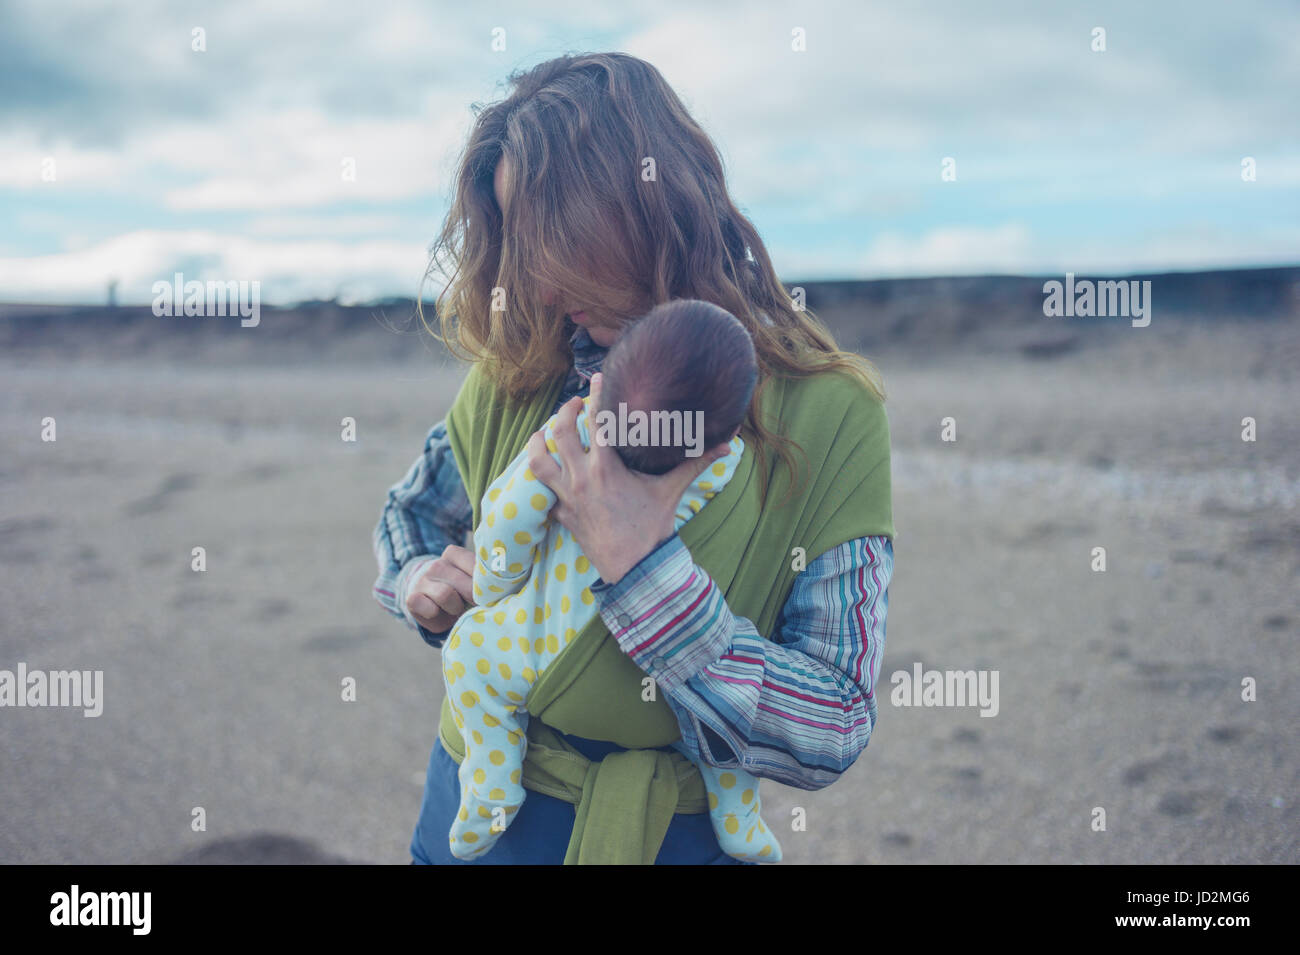 A young mother on the beach is putting her baby in a wrap - Stock Image